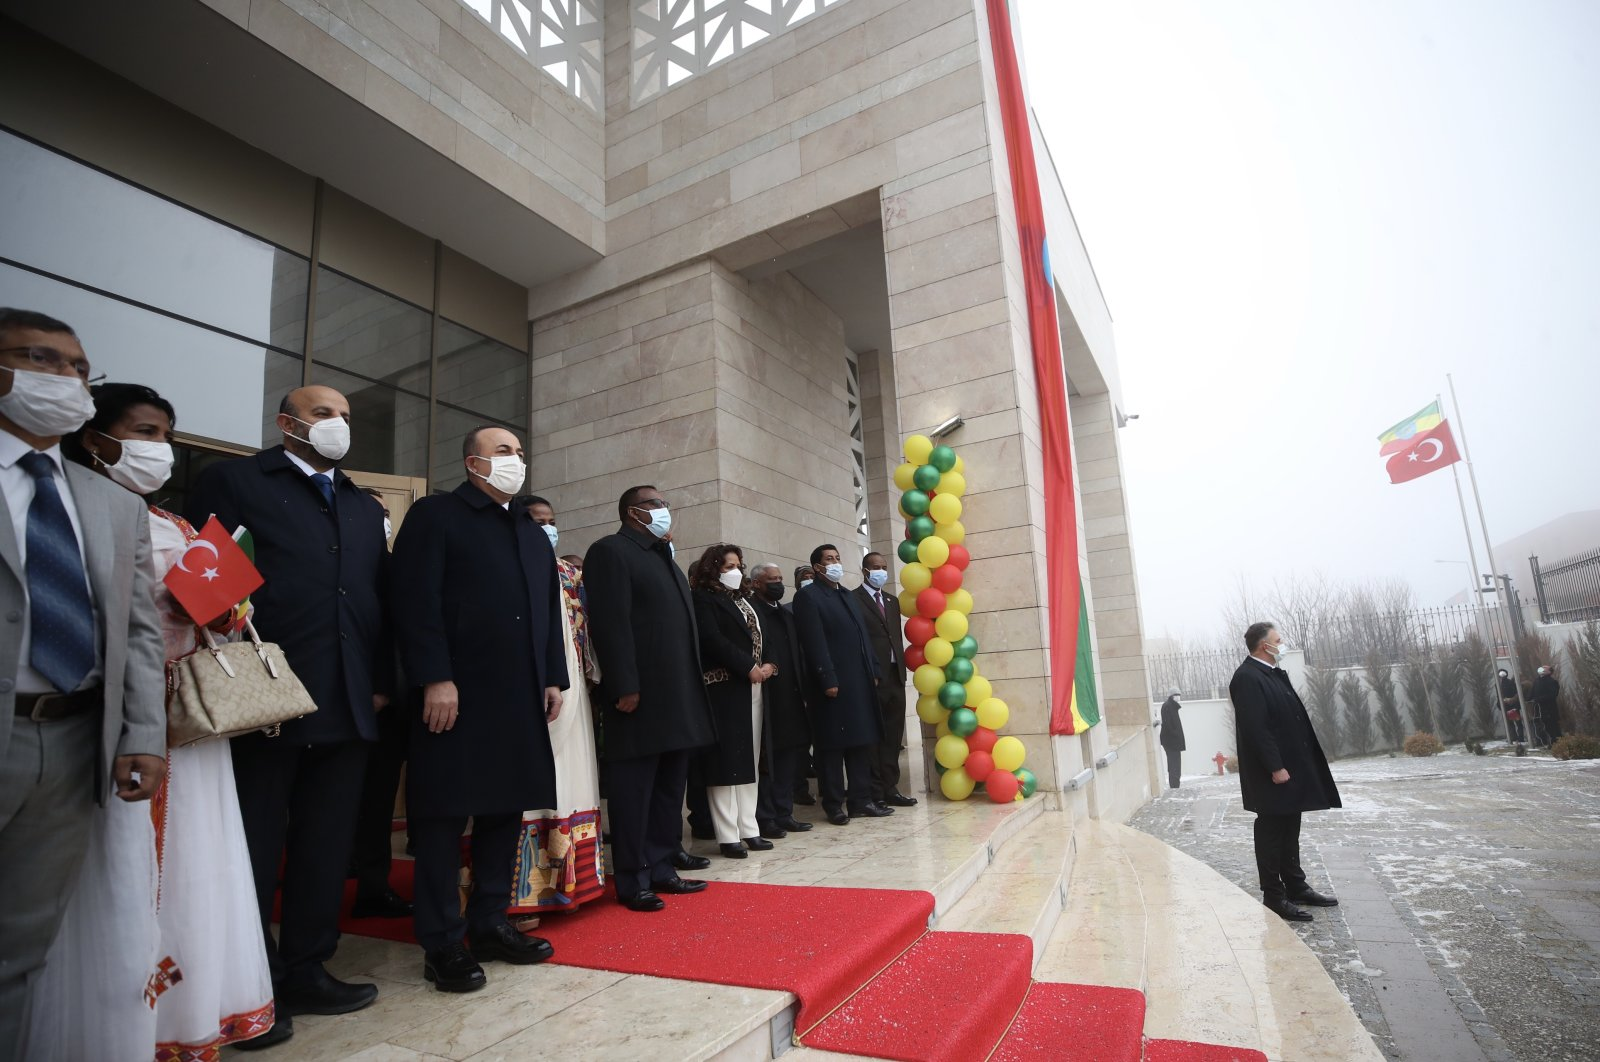 Foreign Minister Mevlüt Çavuşoğlu and his Ethiopian counterpart Demeke Mekonnen attend the inauguration ceremony of Ethiopia's new embassy building in Ankara, Turkey, Feb. 15, 2021 (AA Photo)